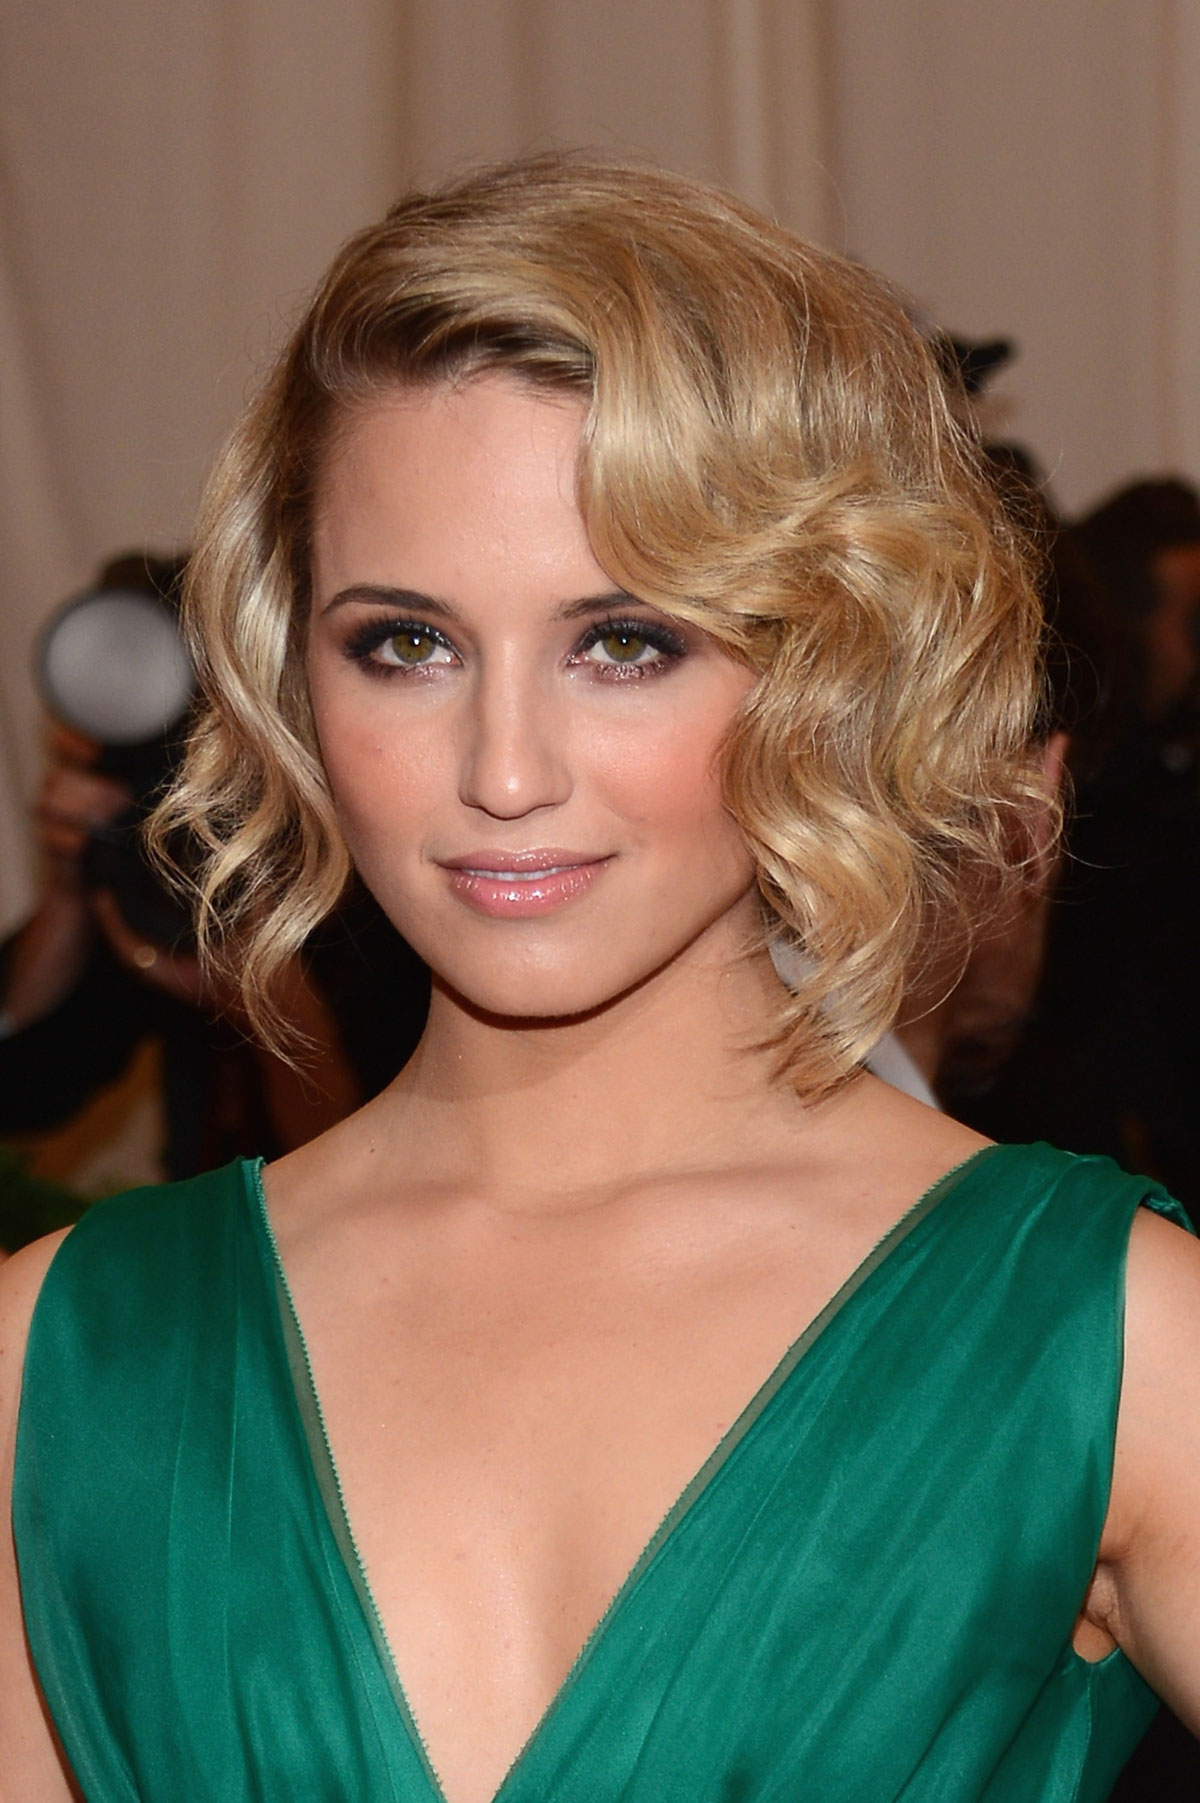 Download this Dianna Agron Metropolitan Museum Art Costume Gala picture